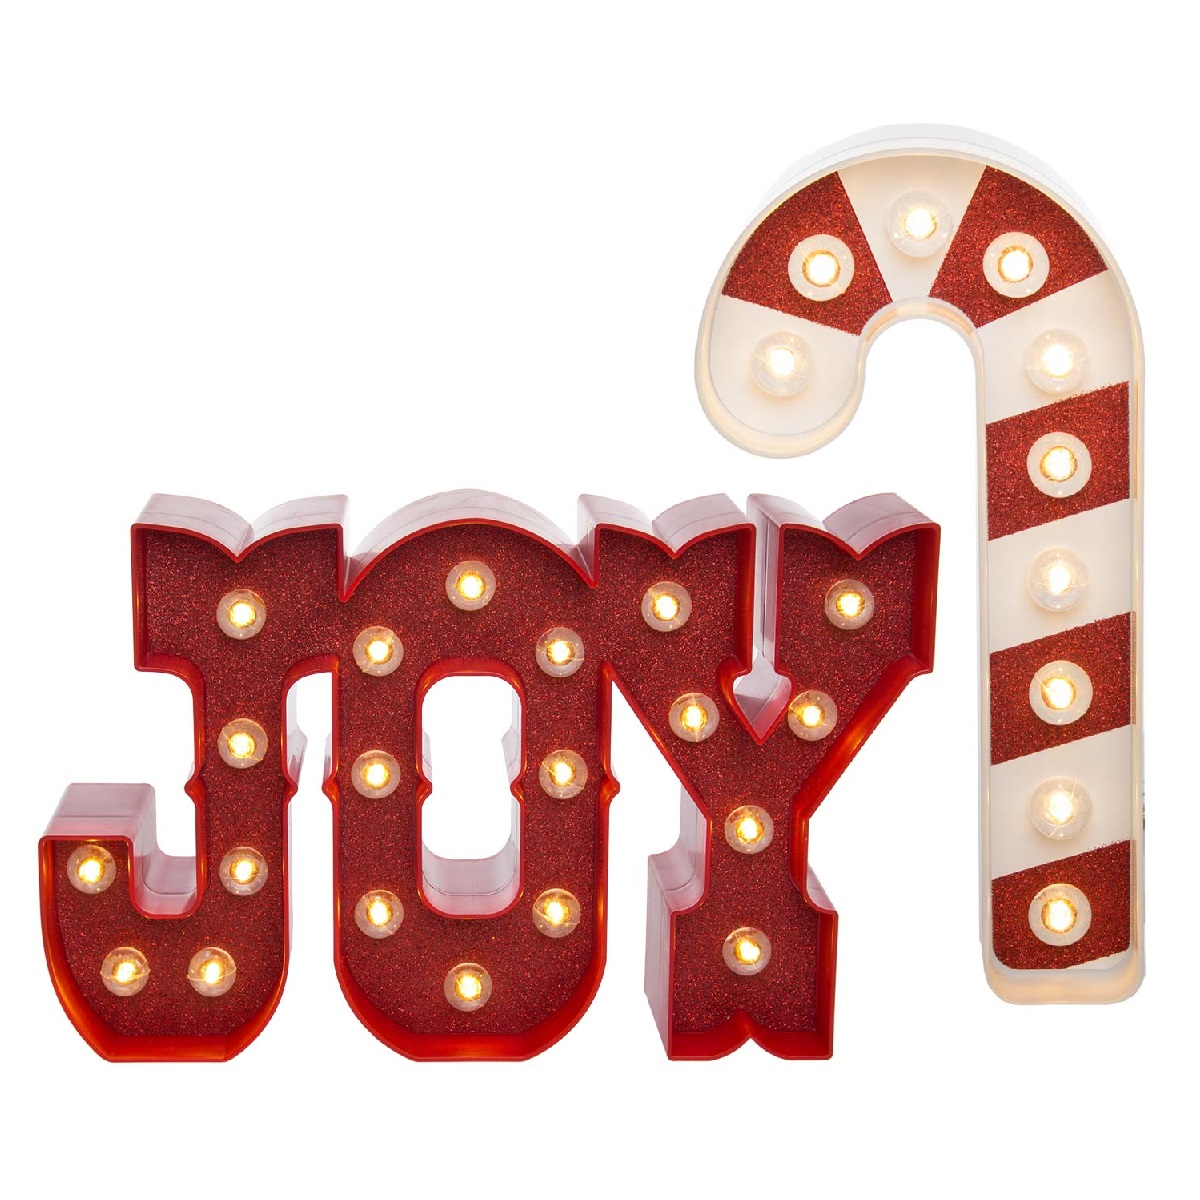 Heidi Swapp (Set of 2) LED Lighted Marquee Holiday Sign Kits Joy & Candy Cane Christmas Décor Home Decorations